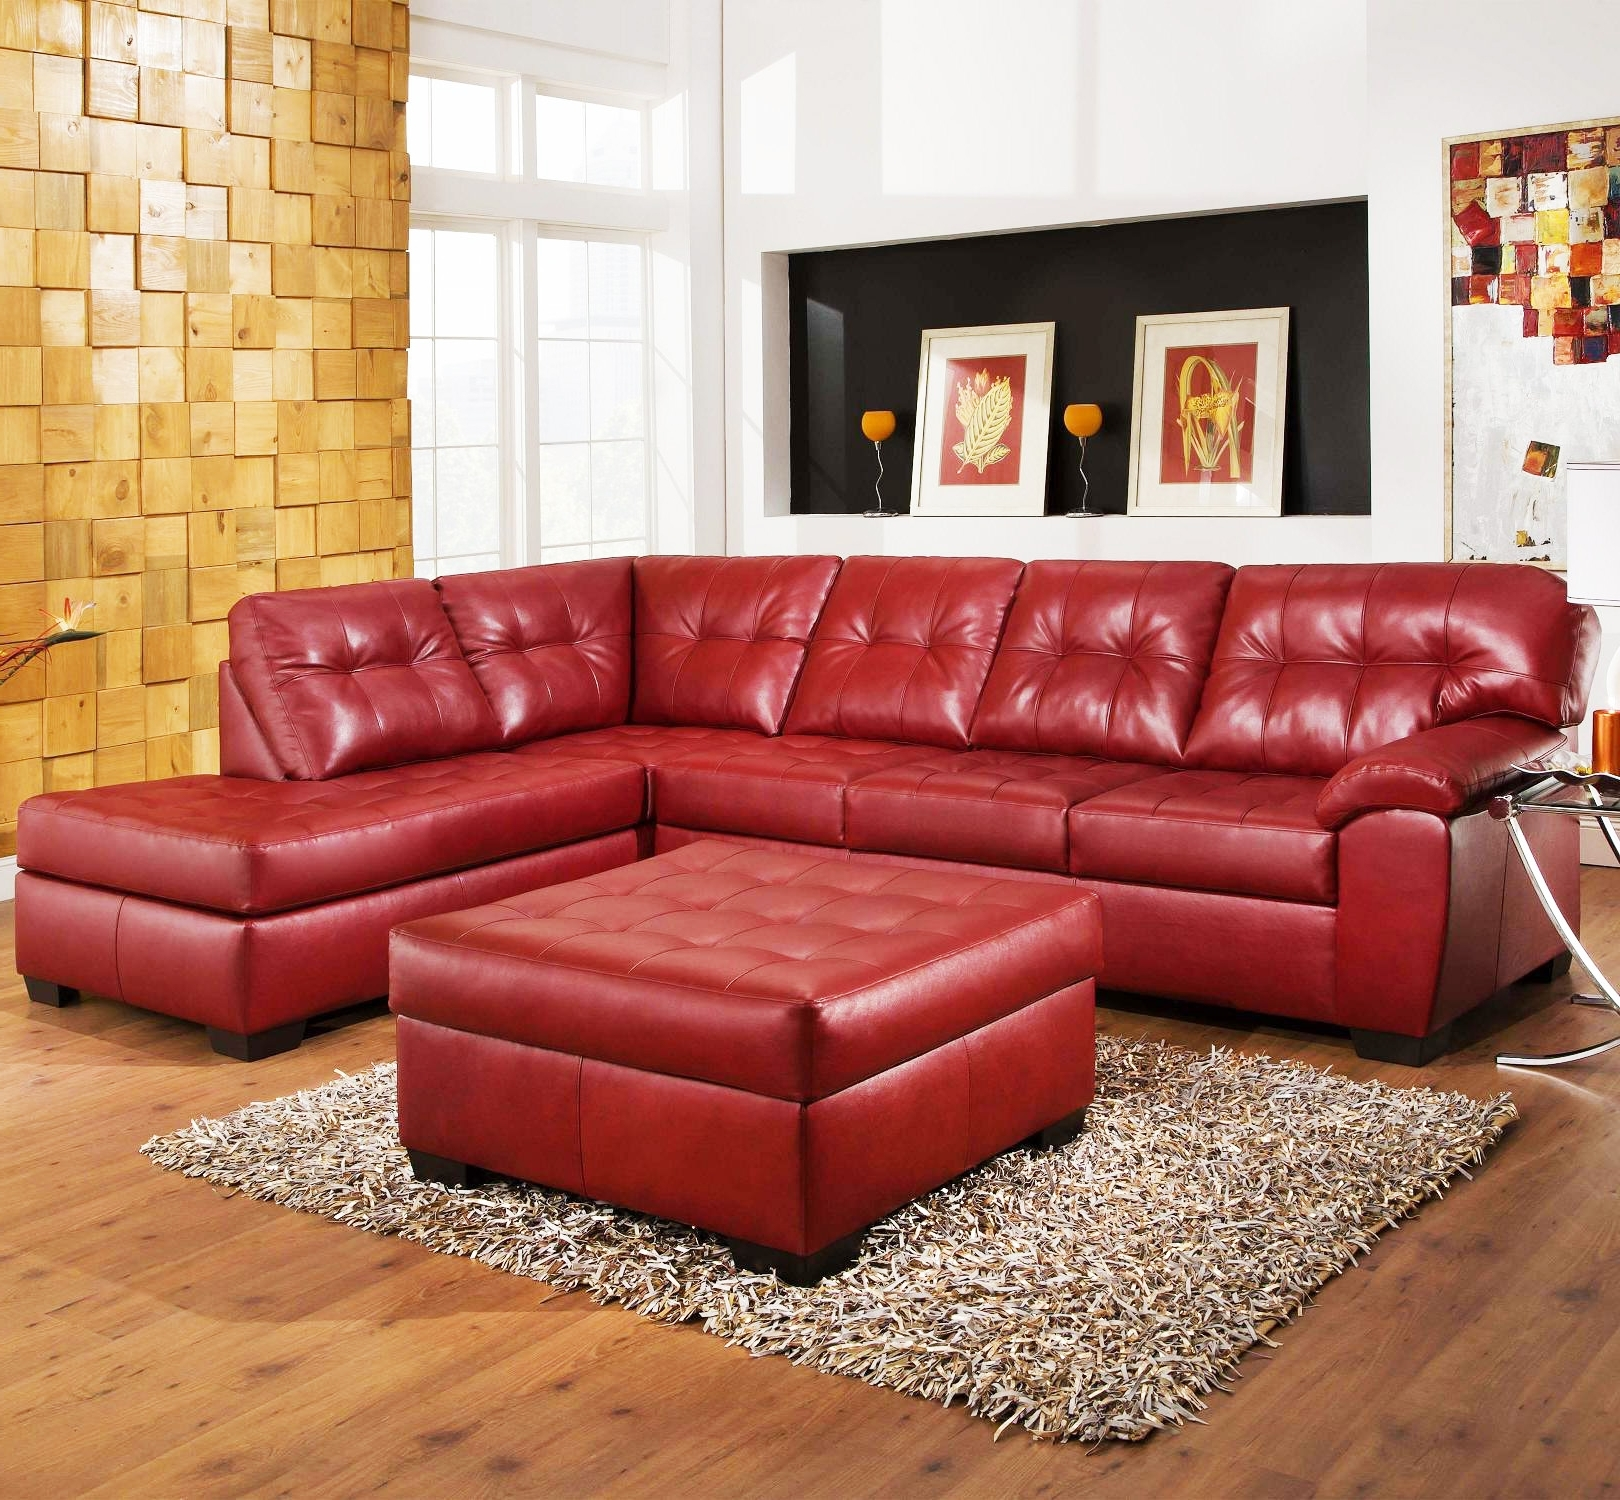 Most Up To Date Red Leather Sofas With Regard To Sofas : Sectional Couch Small Sectional Couch Red Sectional Couch (View 7 of 20)